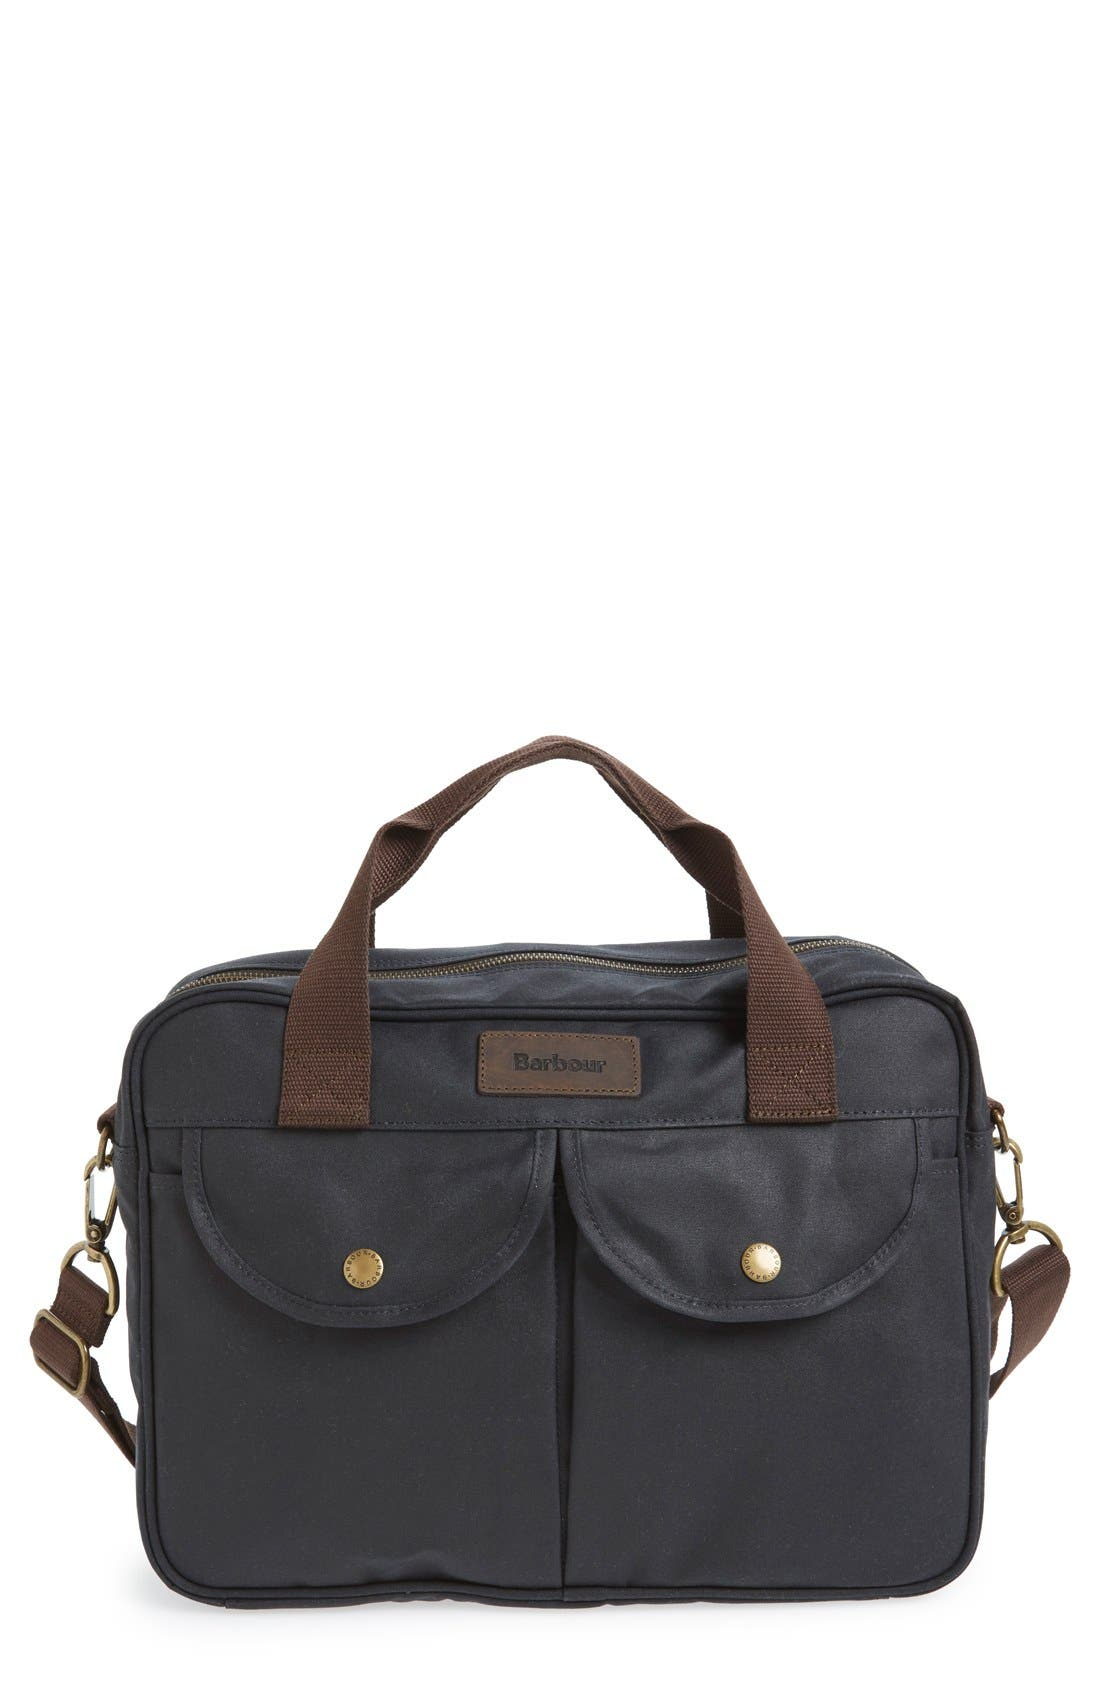 Main Image - Barbour 'Longthorpe' Waxed Canvas Laptop Bag